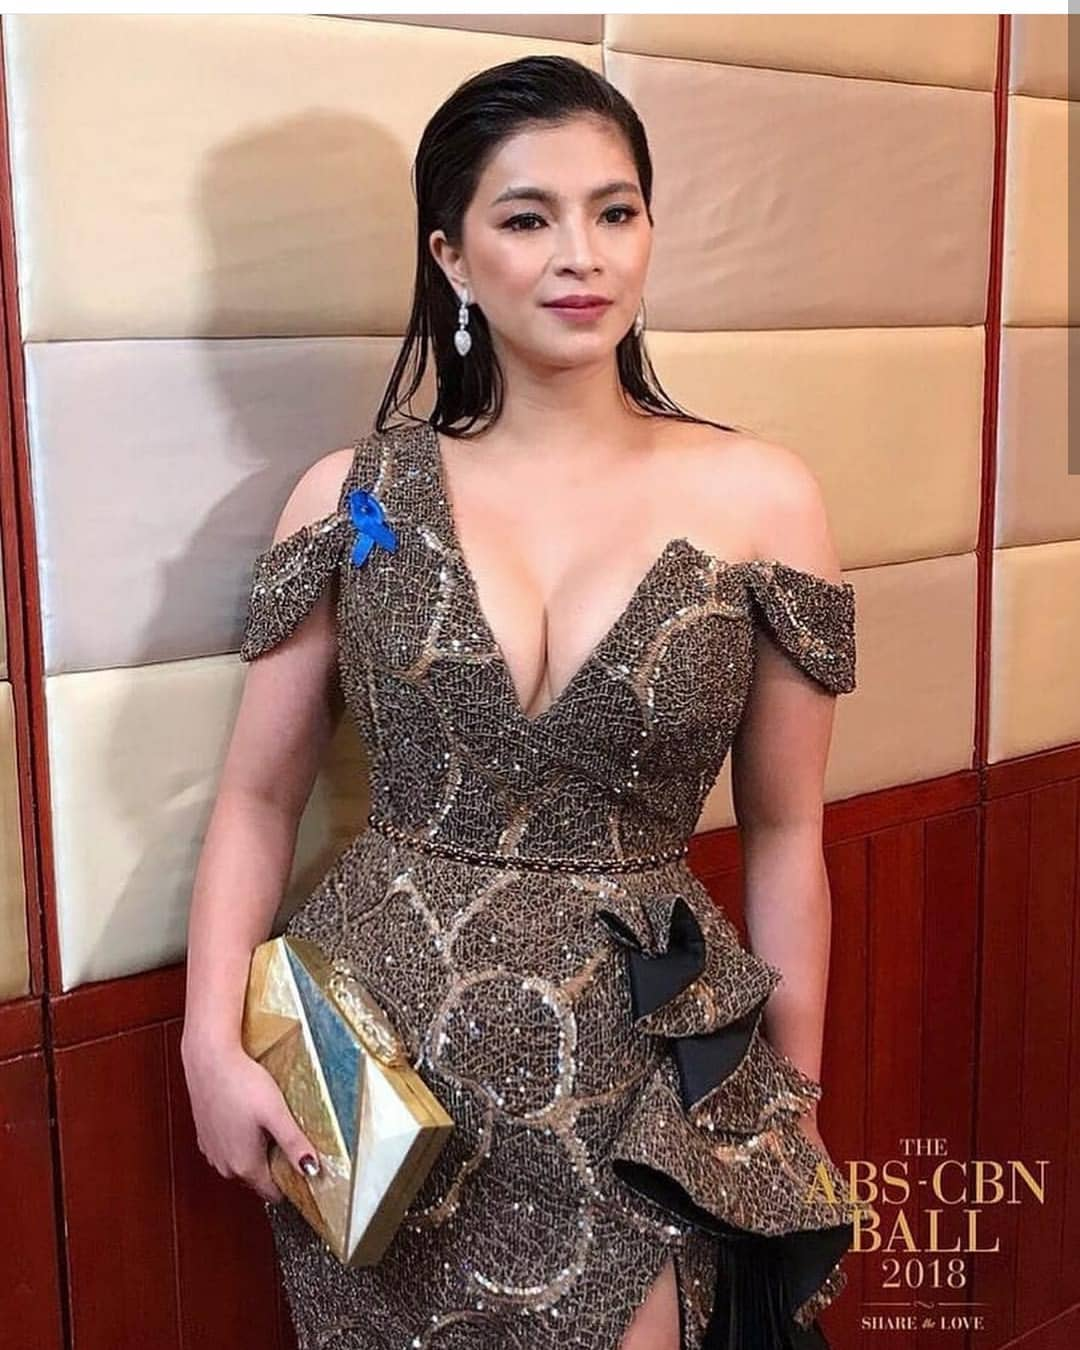 angel locsin abs cbn ball cleavage pics 02